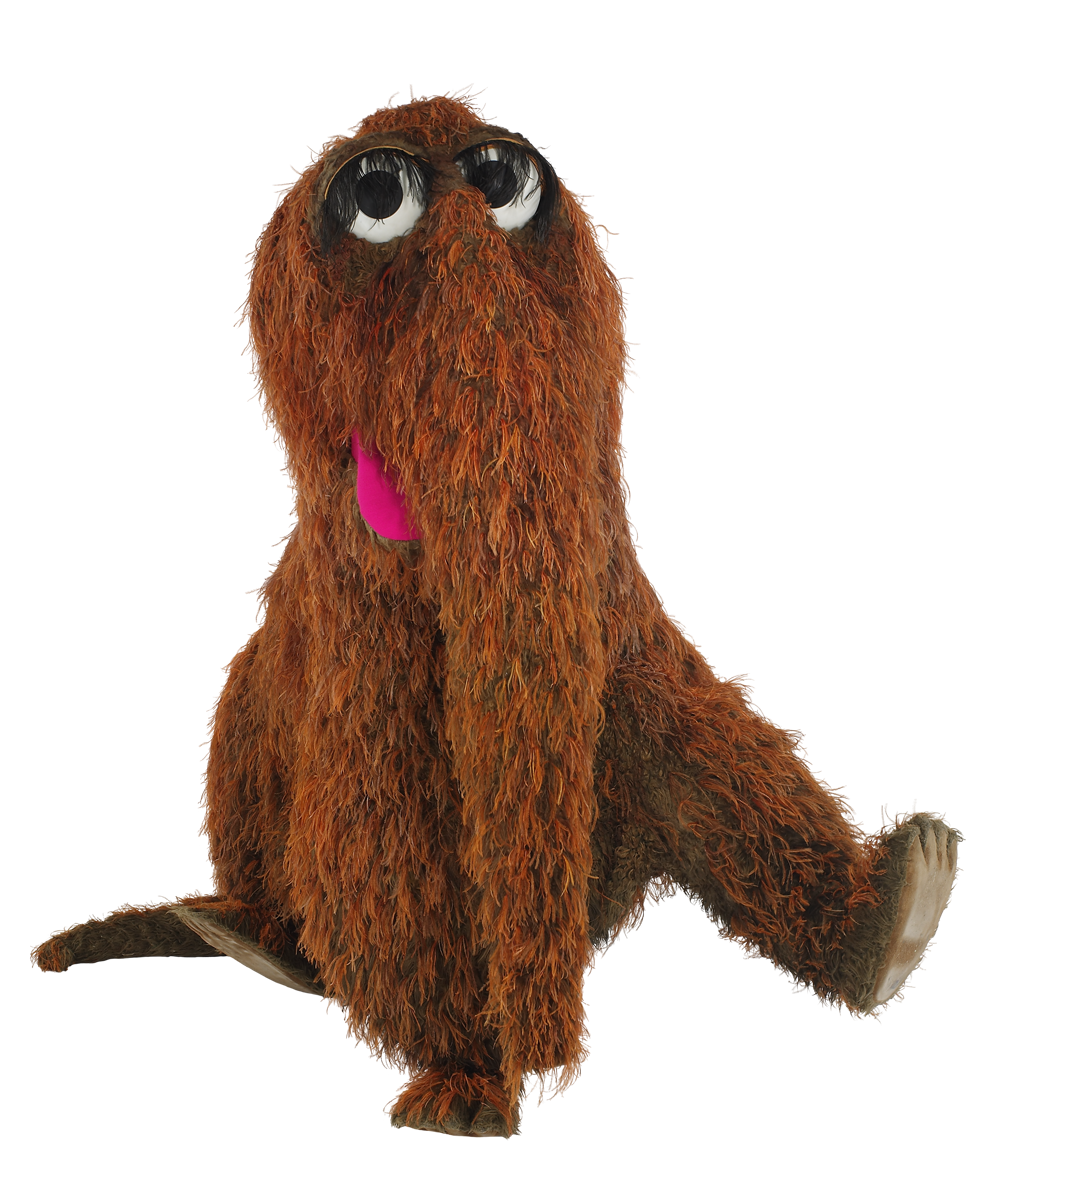 Sesame street character png. Image tumblr snuffydancing muppet